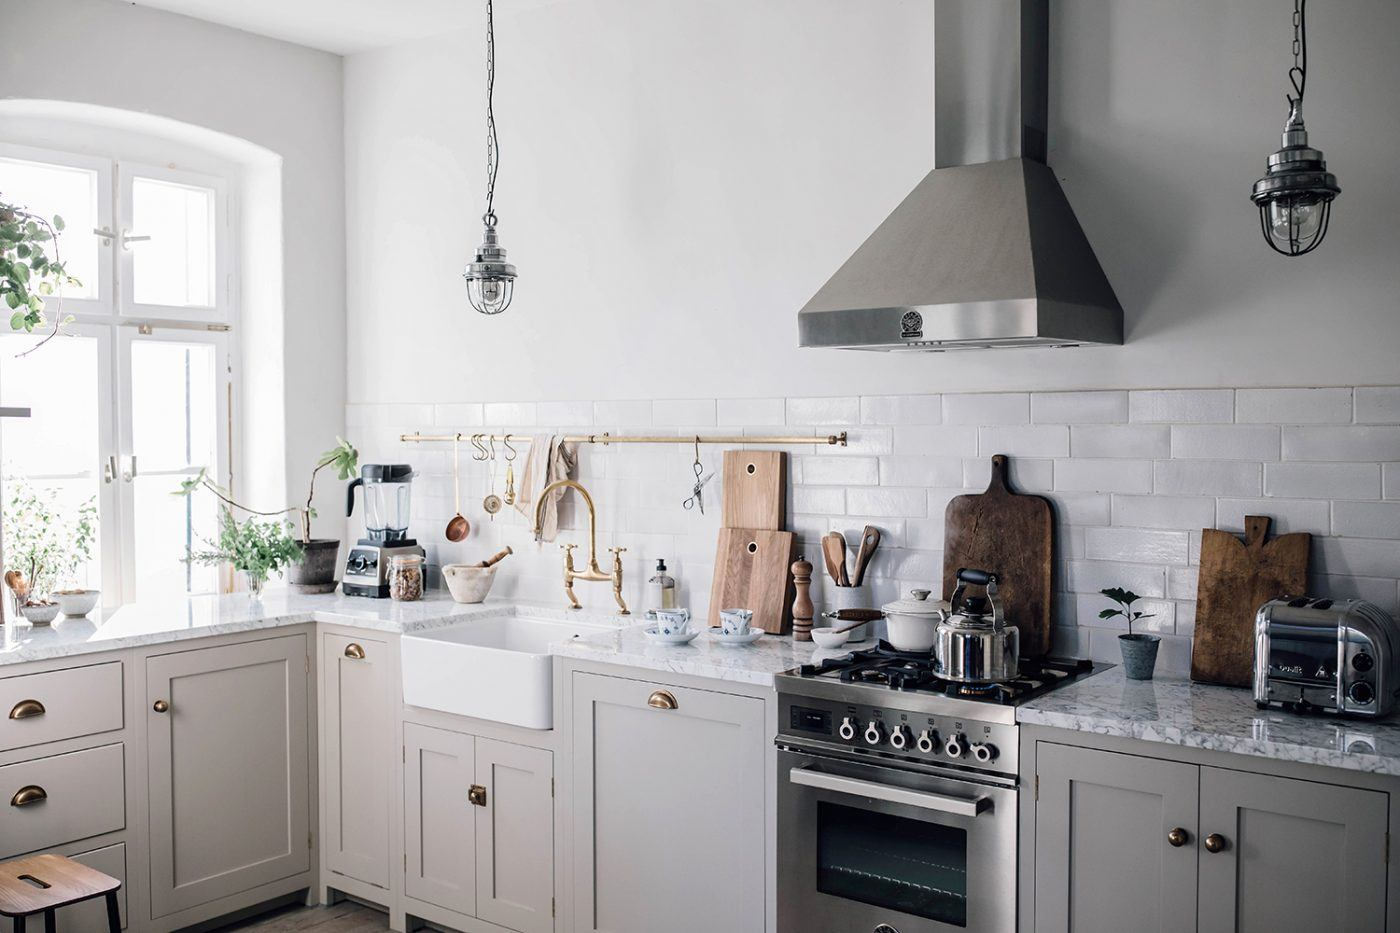 Image for Our new DeVol Kitchen in the Countryside